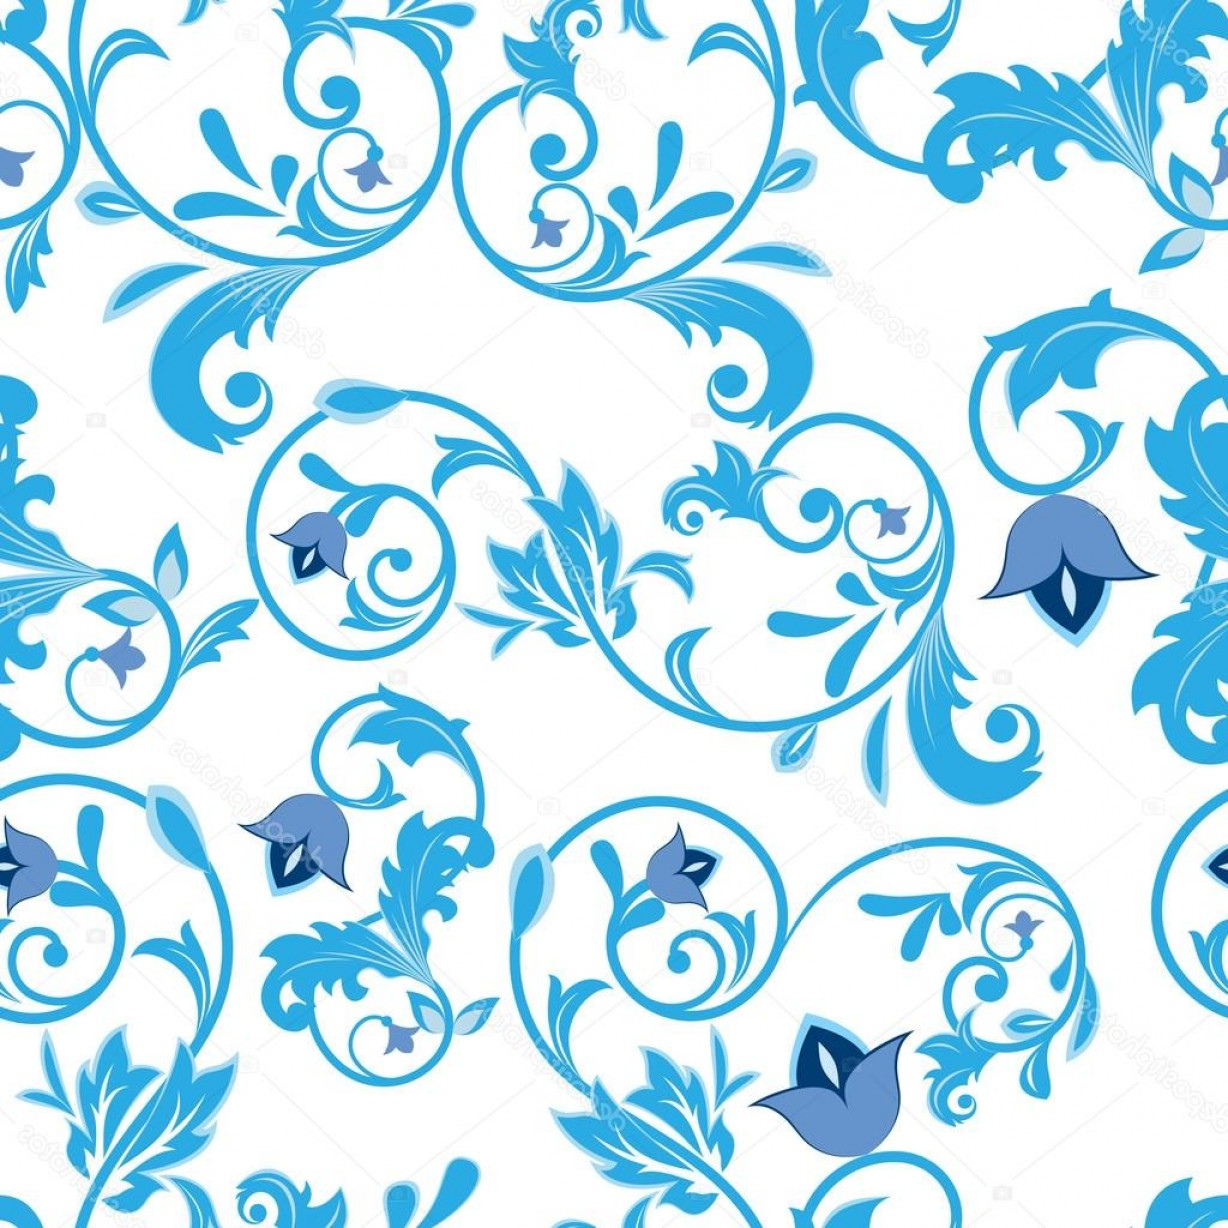 Turquoise Flower Vector: Stock Illustration Seamless Blue And White Flowers